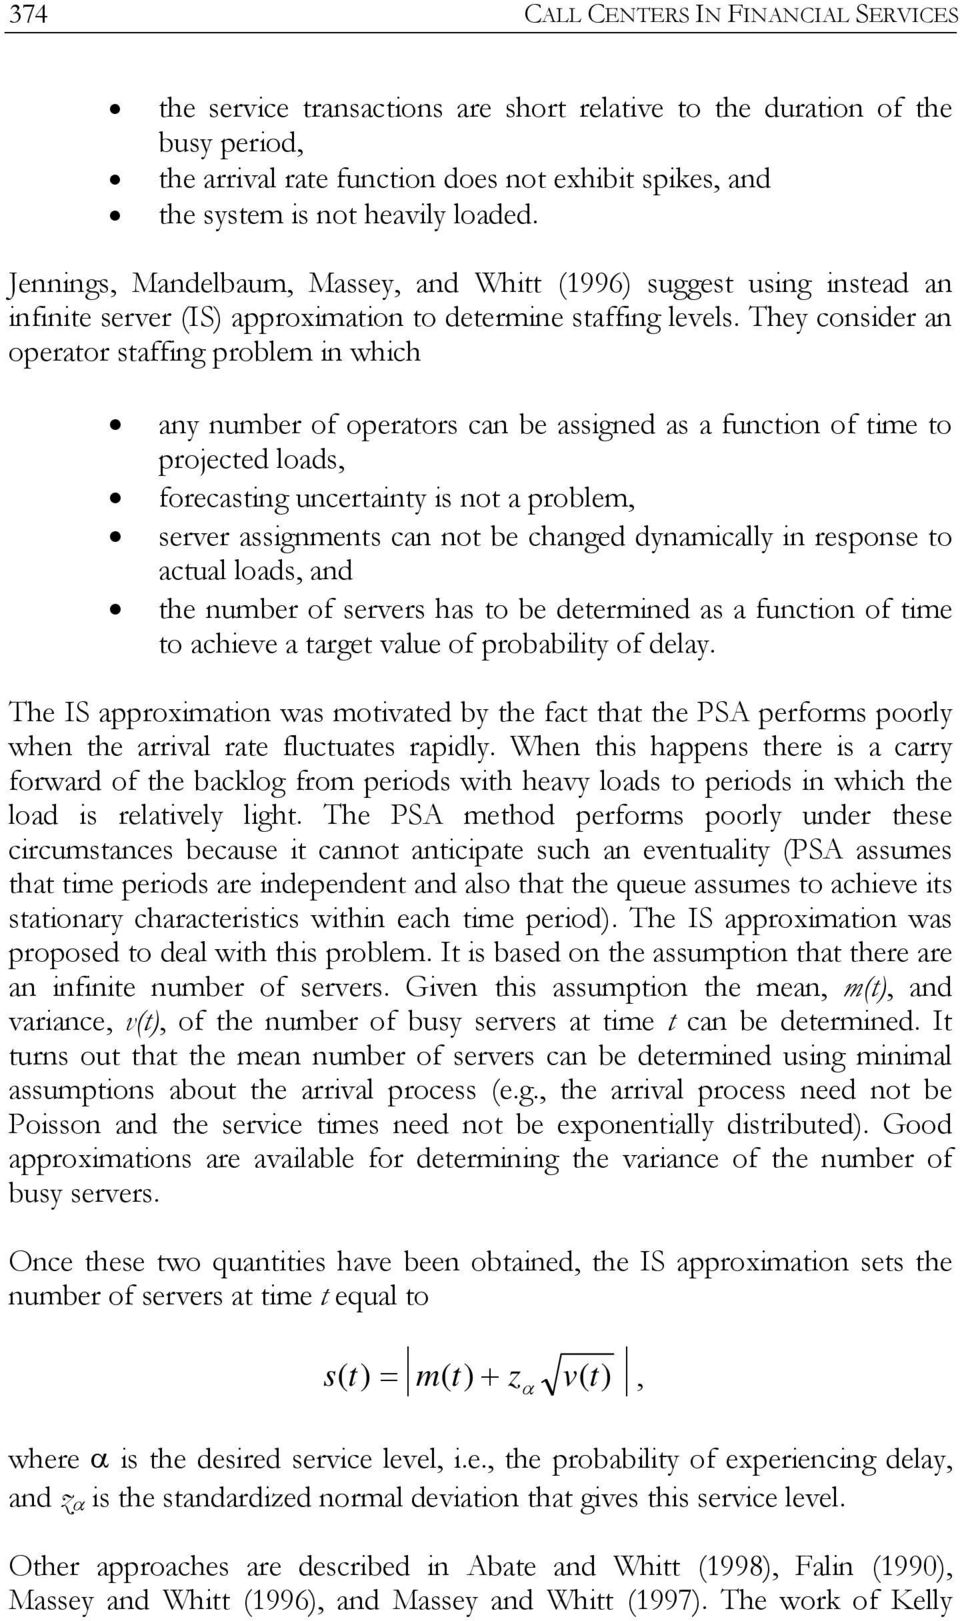 They consider an operator staffing problem in which any number of operators can be assigned as a function of time to projected loads, forecasting uncertainty is not a problem, server assignments can